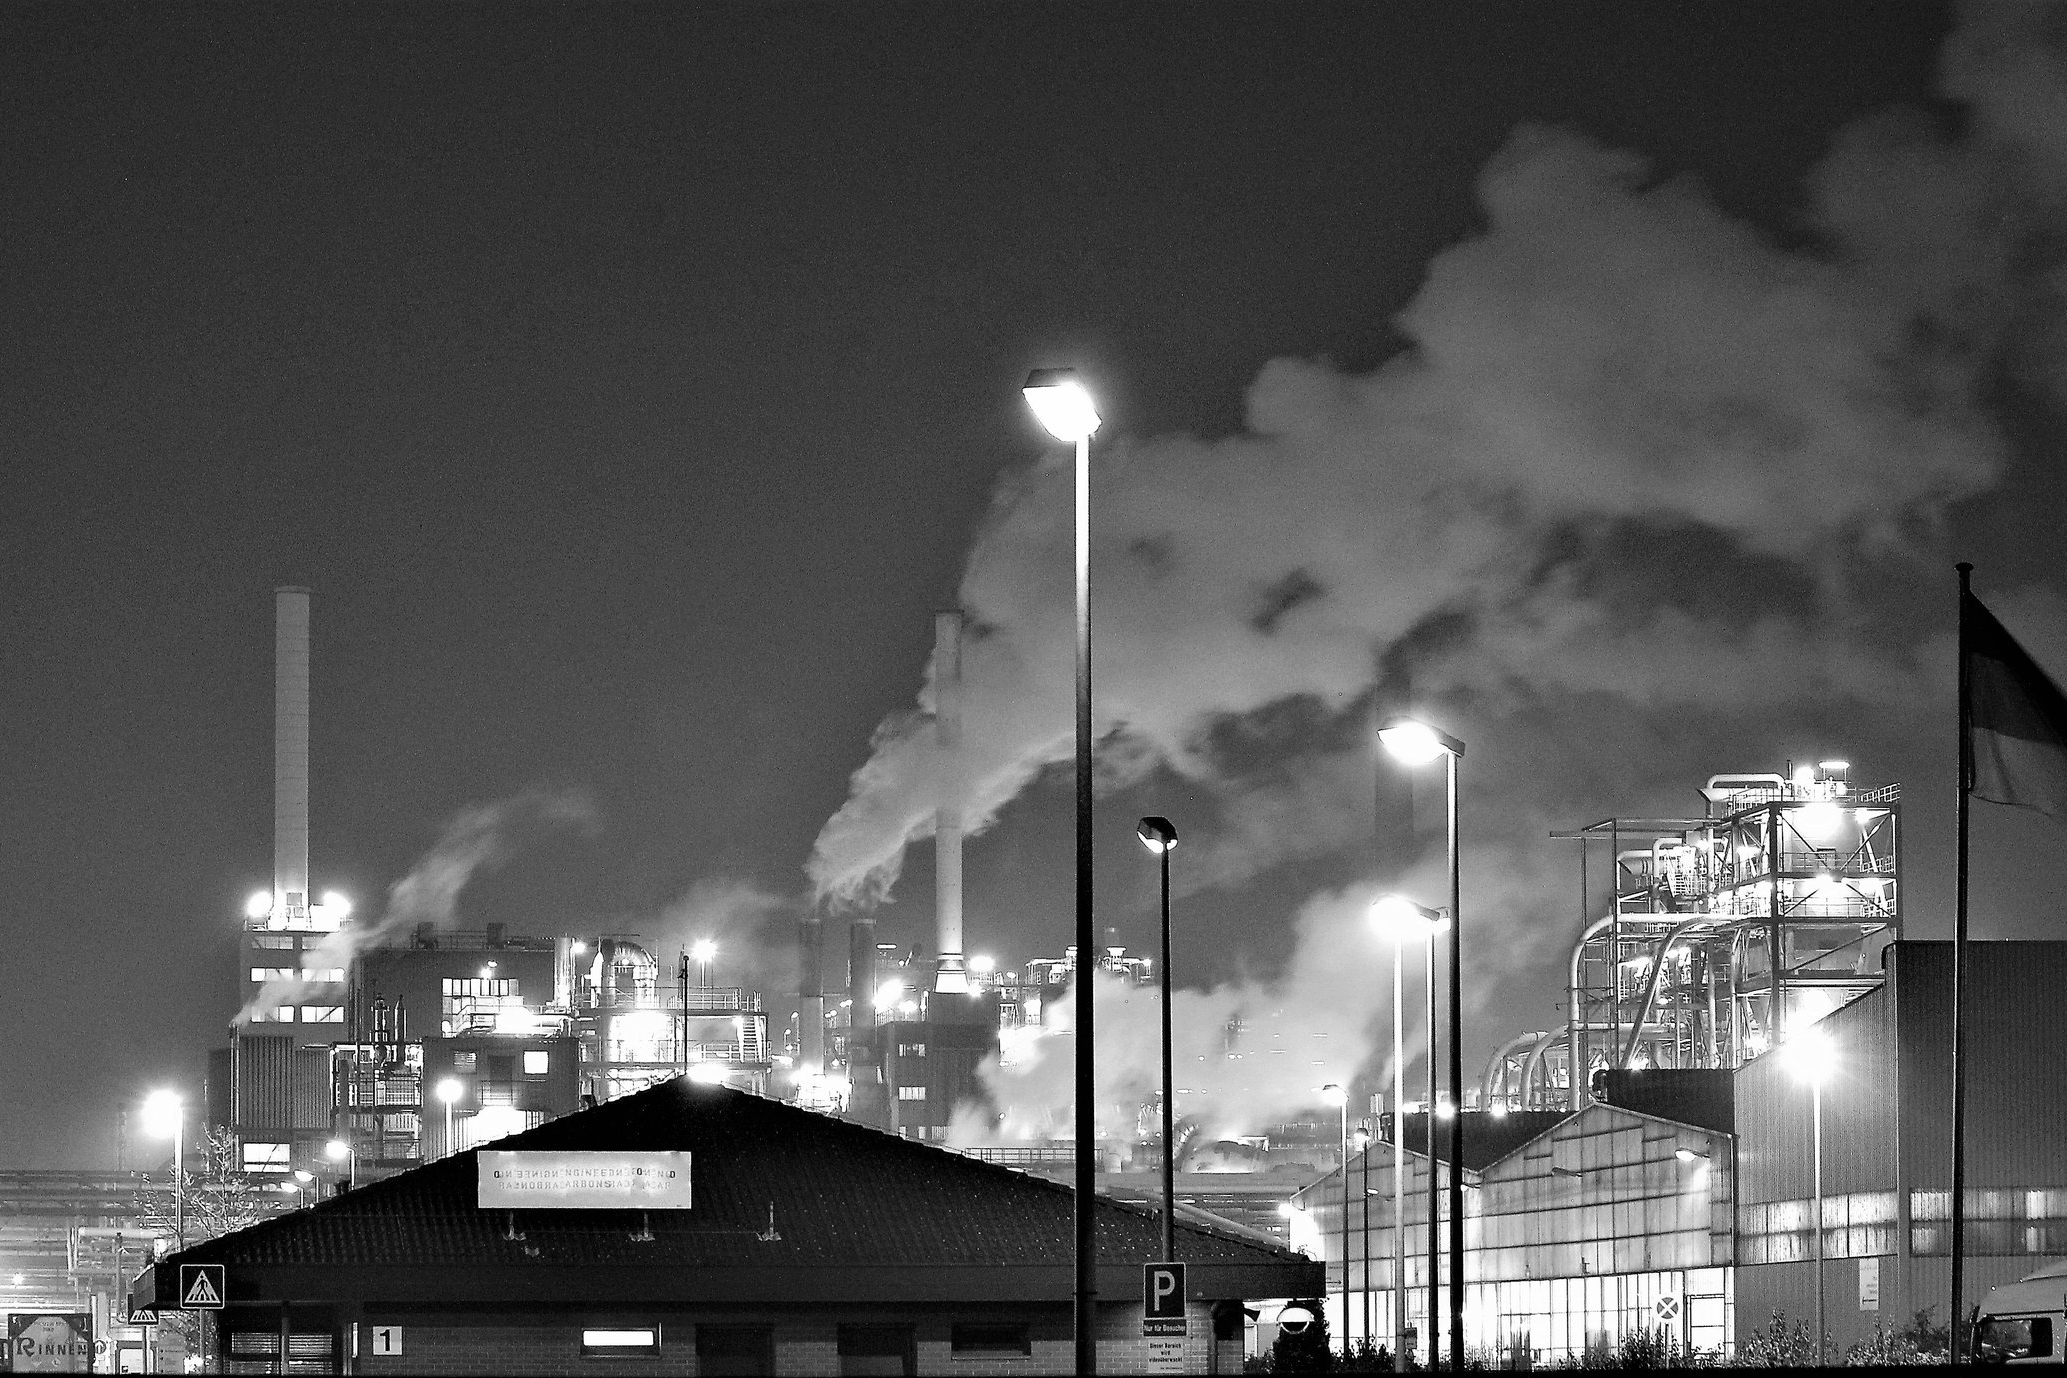 air-pollution-architecture-black-and-white-683535.jpg